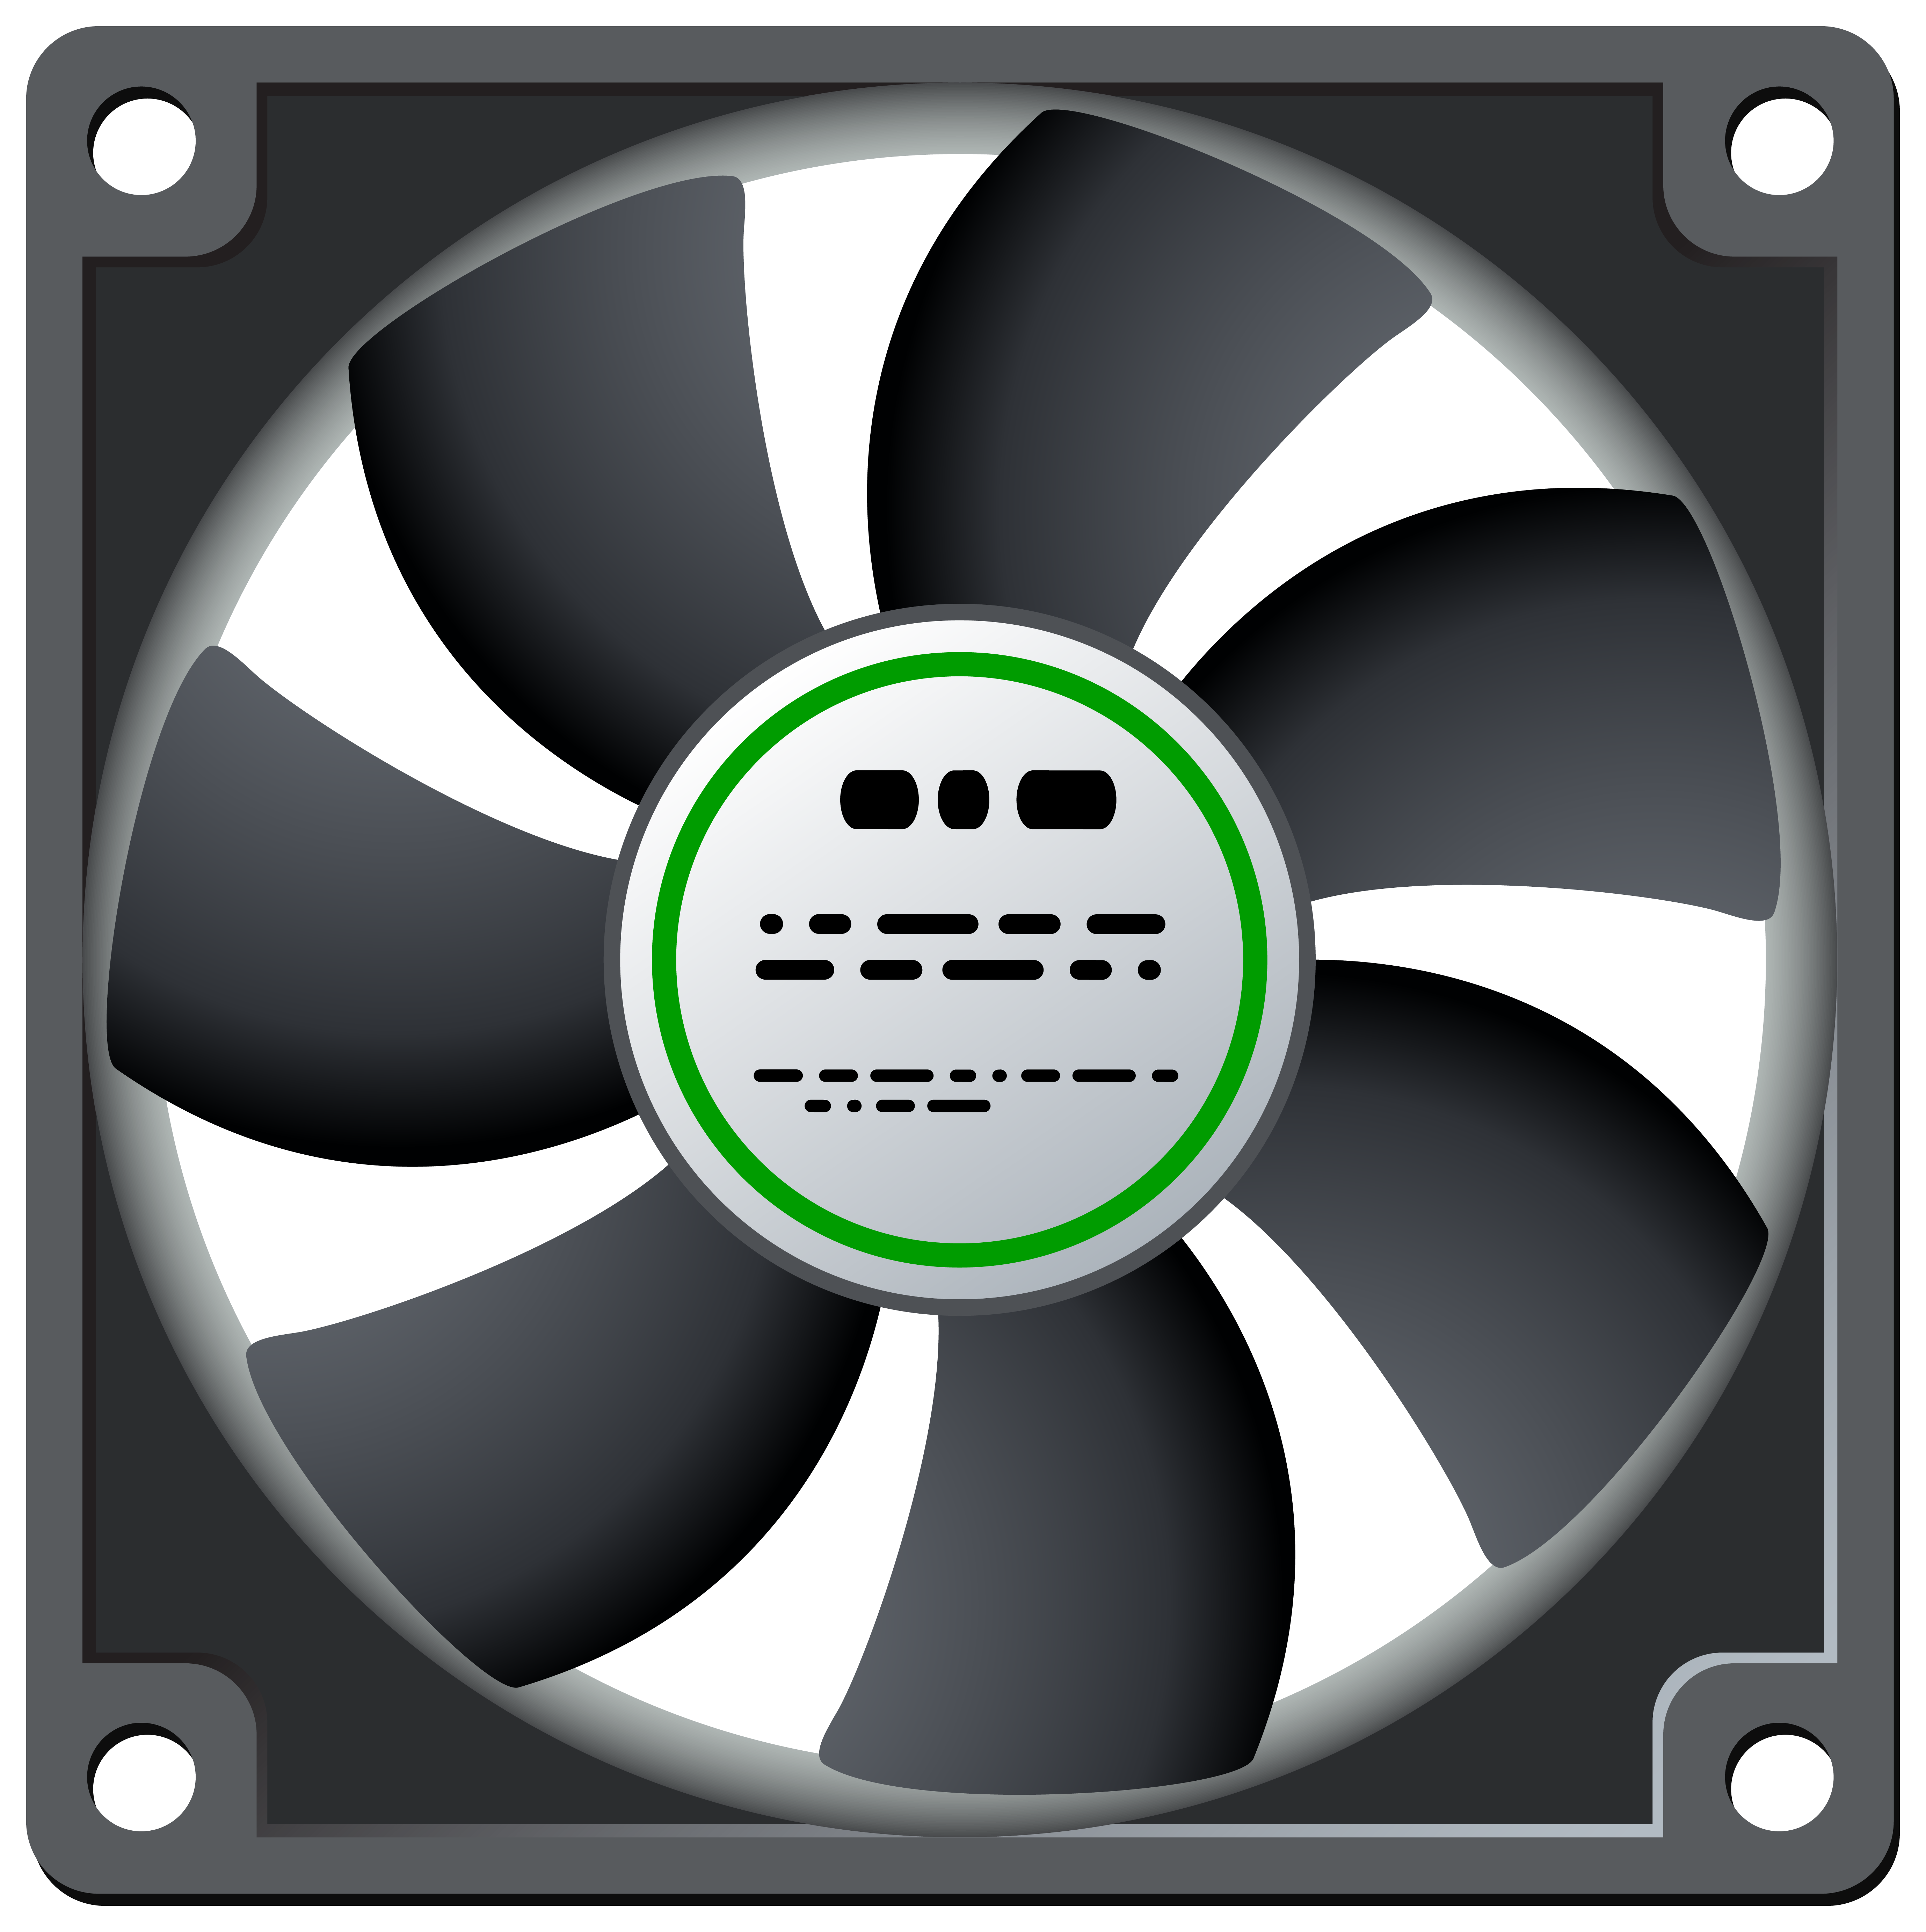 Standard fan png best. Circle clipart computer